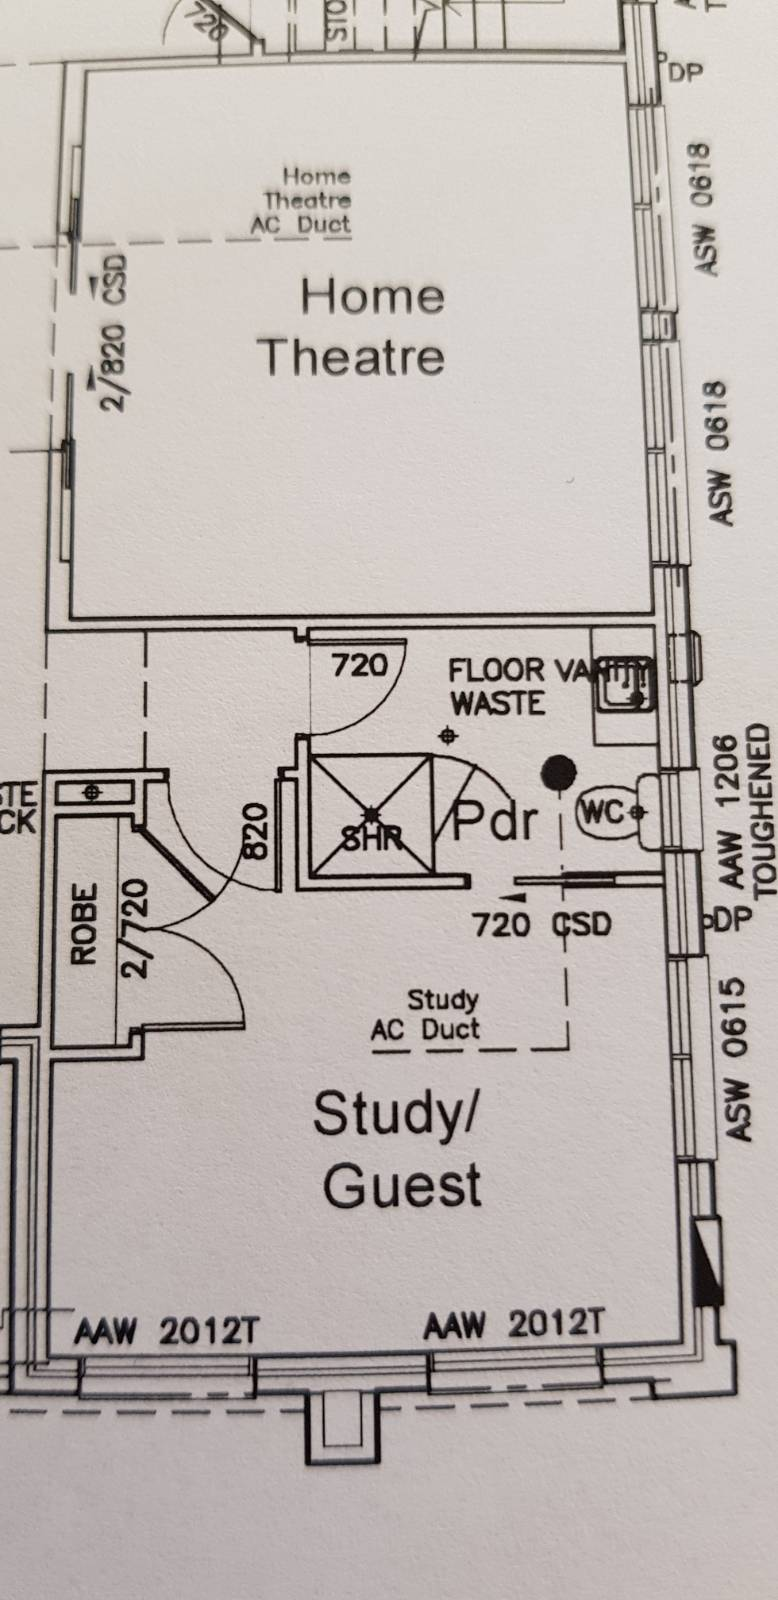 2 entry point for bathroom?